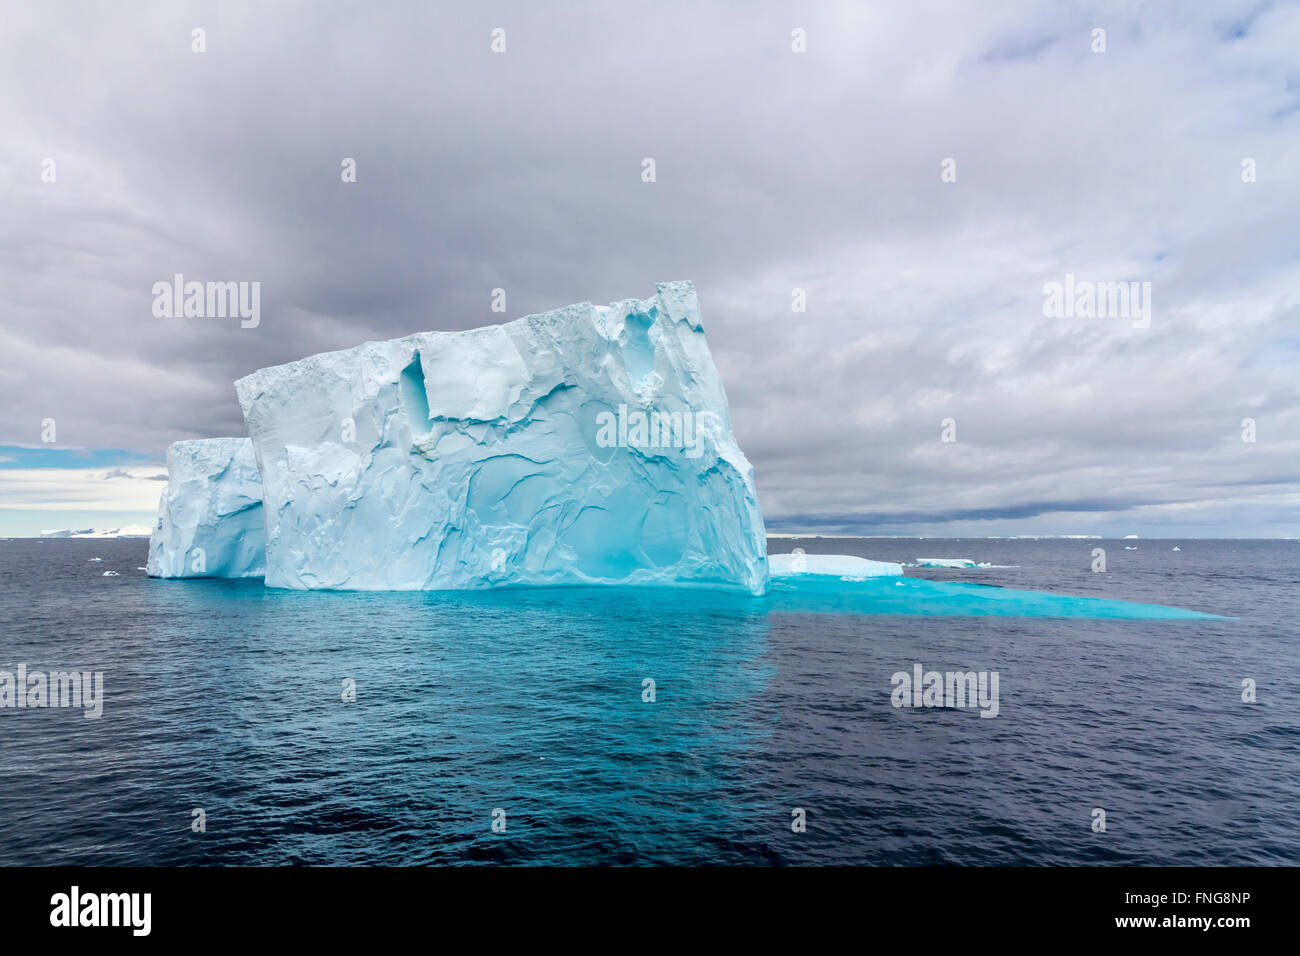 Icebergs in the Antarctic Peninsula, Antarctica. - Stock Image